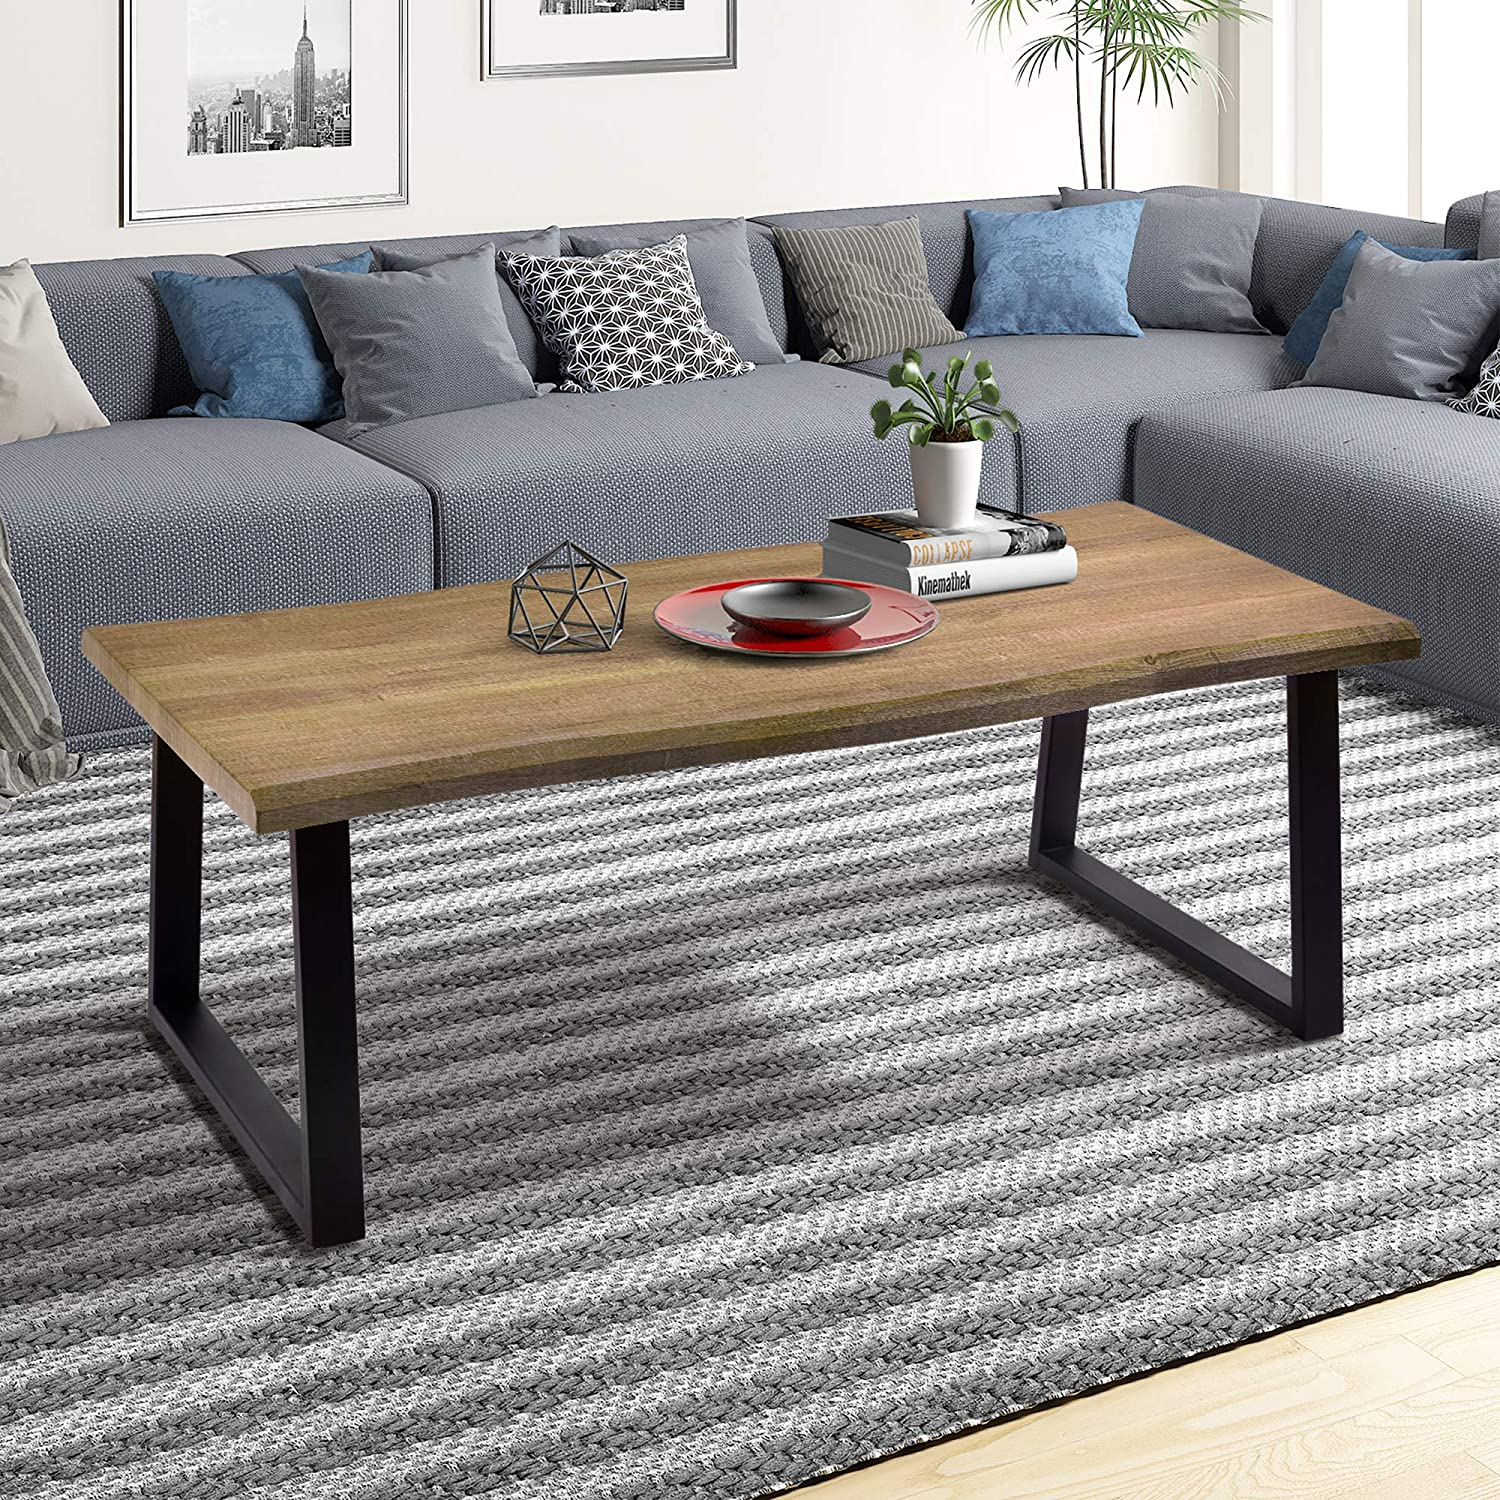 Amazon com wood coffee table cocktail table with metal frame industrial style living room furniture kitchen dining